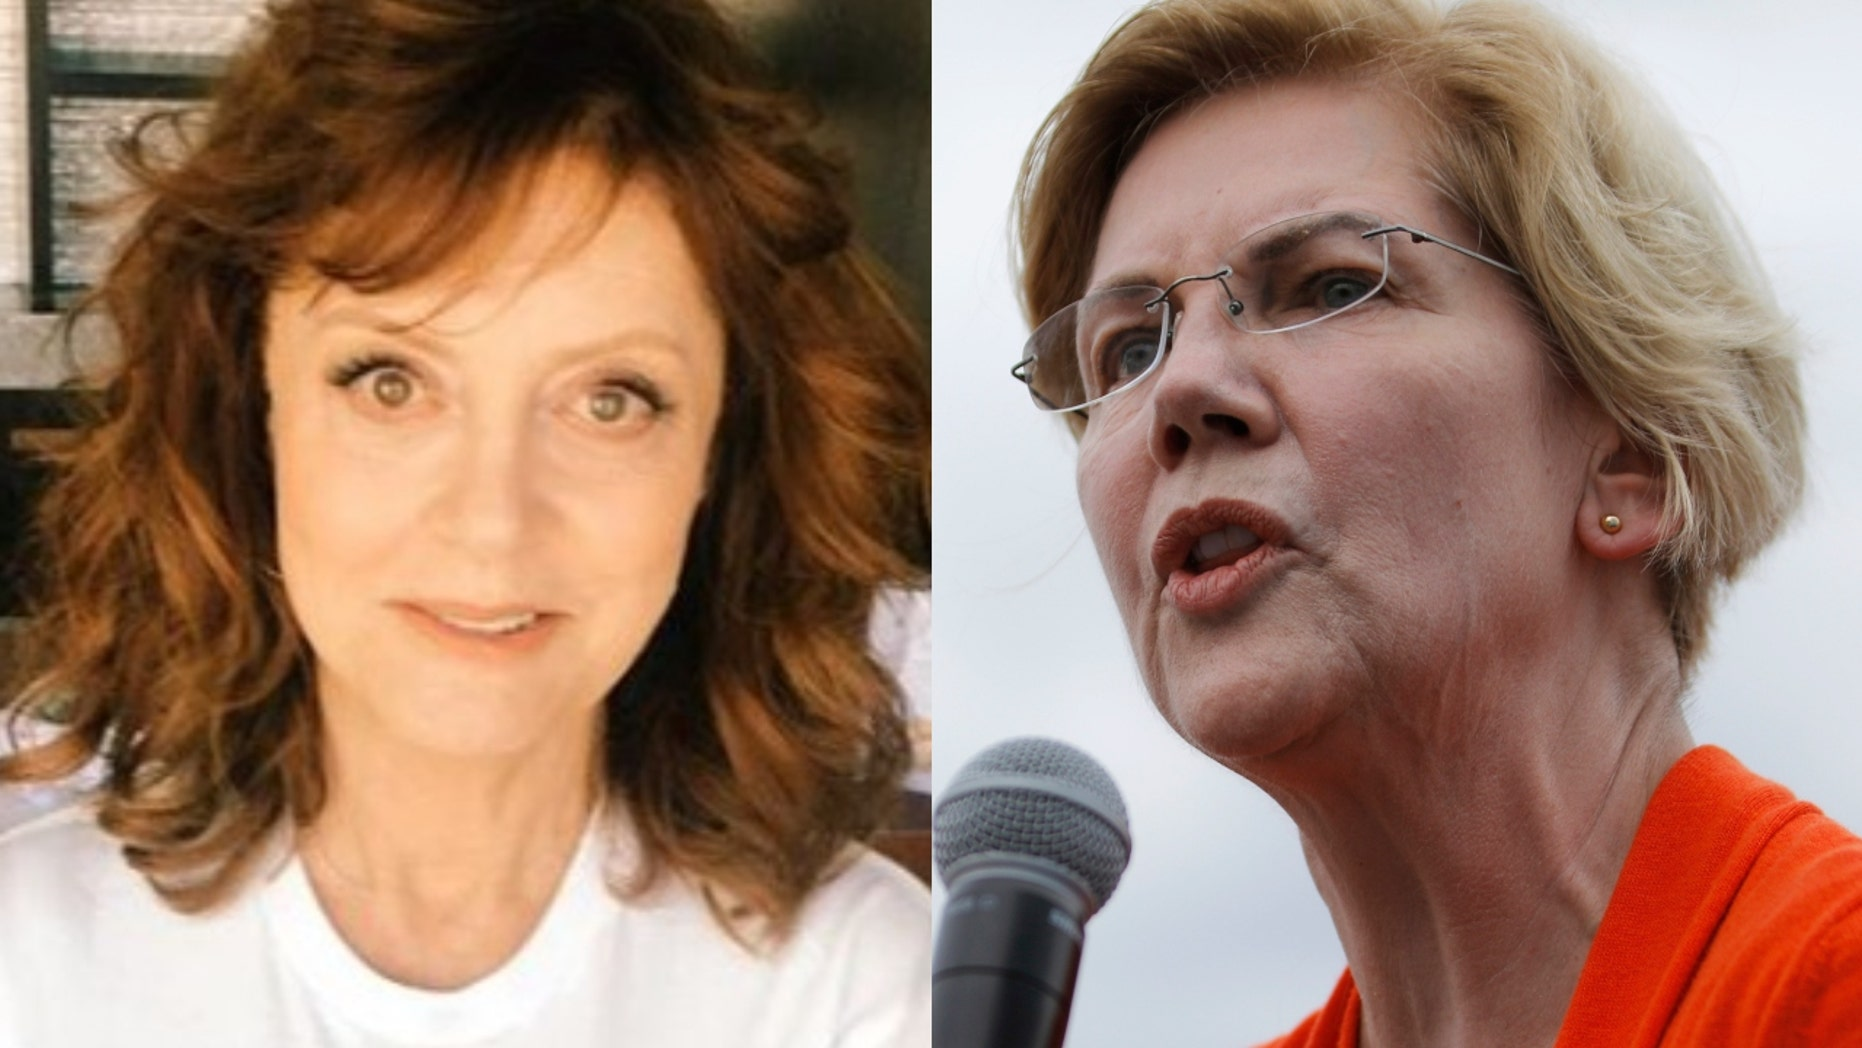 Westlake Legal Group Sarandon_Warren_THUMB Susan Sarandon appears to take shot at Warren during Sanders event New York Post fox-news/politics fox-news/person/elizabeth-warren fox-news/person/bernie-sanders fnc/entertainment fnc article a9c3ffea-a551-580e-81d0-21317fc7b895